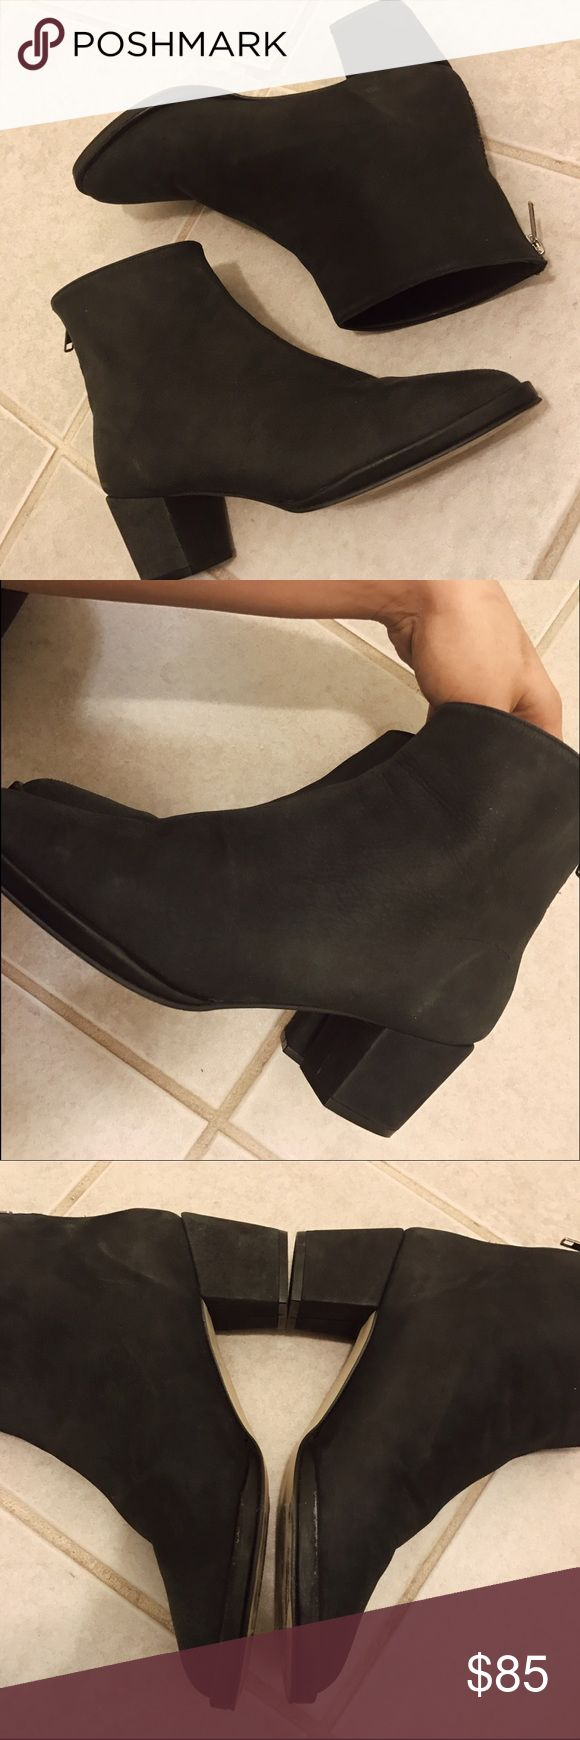 $150 AMERICAN APPAREL LEATHER ANKLE BOOTS GENUINE LEATHER // SZ 8 // PREVIOUSLY LOVED // GOOD CONDITION // MINOR SCUFFS SHOWN IN PHOTOS // PRICE FIRM // MADE IN USA // CLOSET STAPLE American Apparel Shoes Ankle Boots & Booties